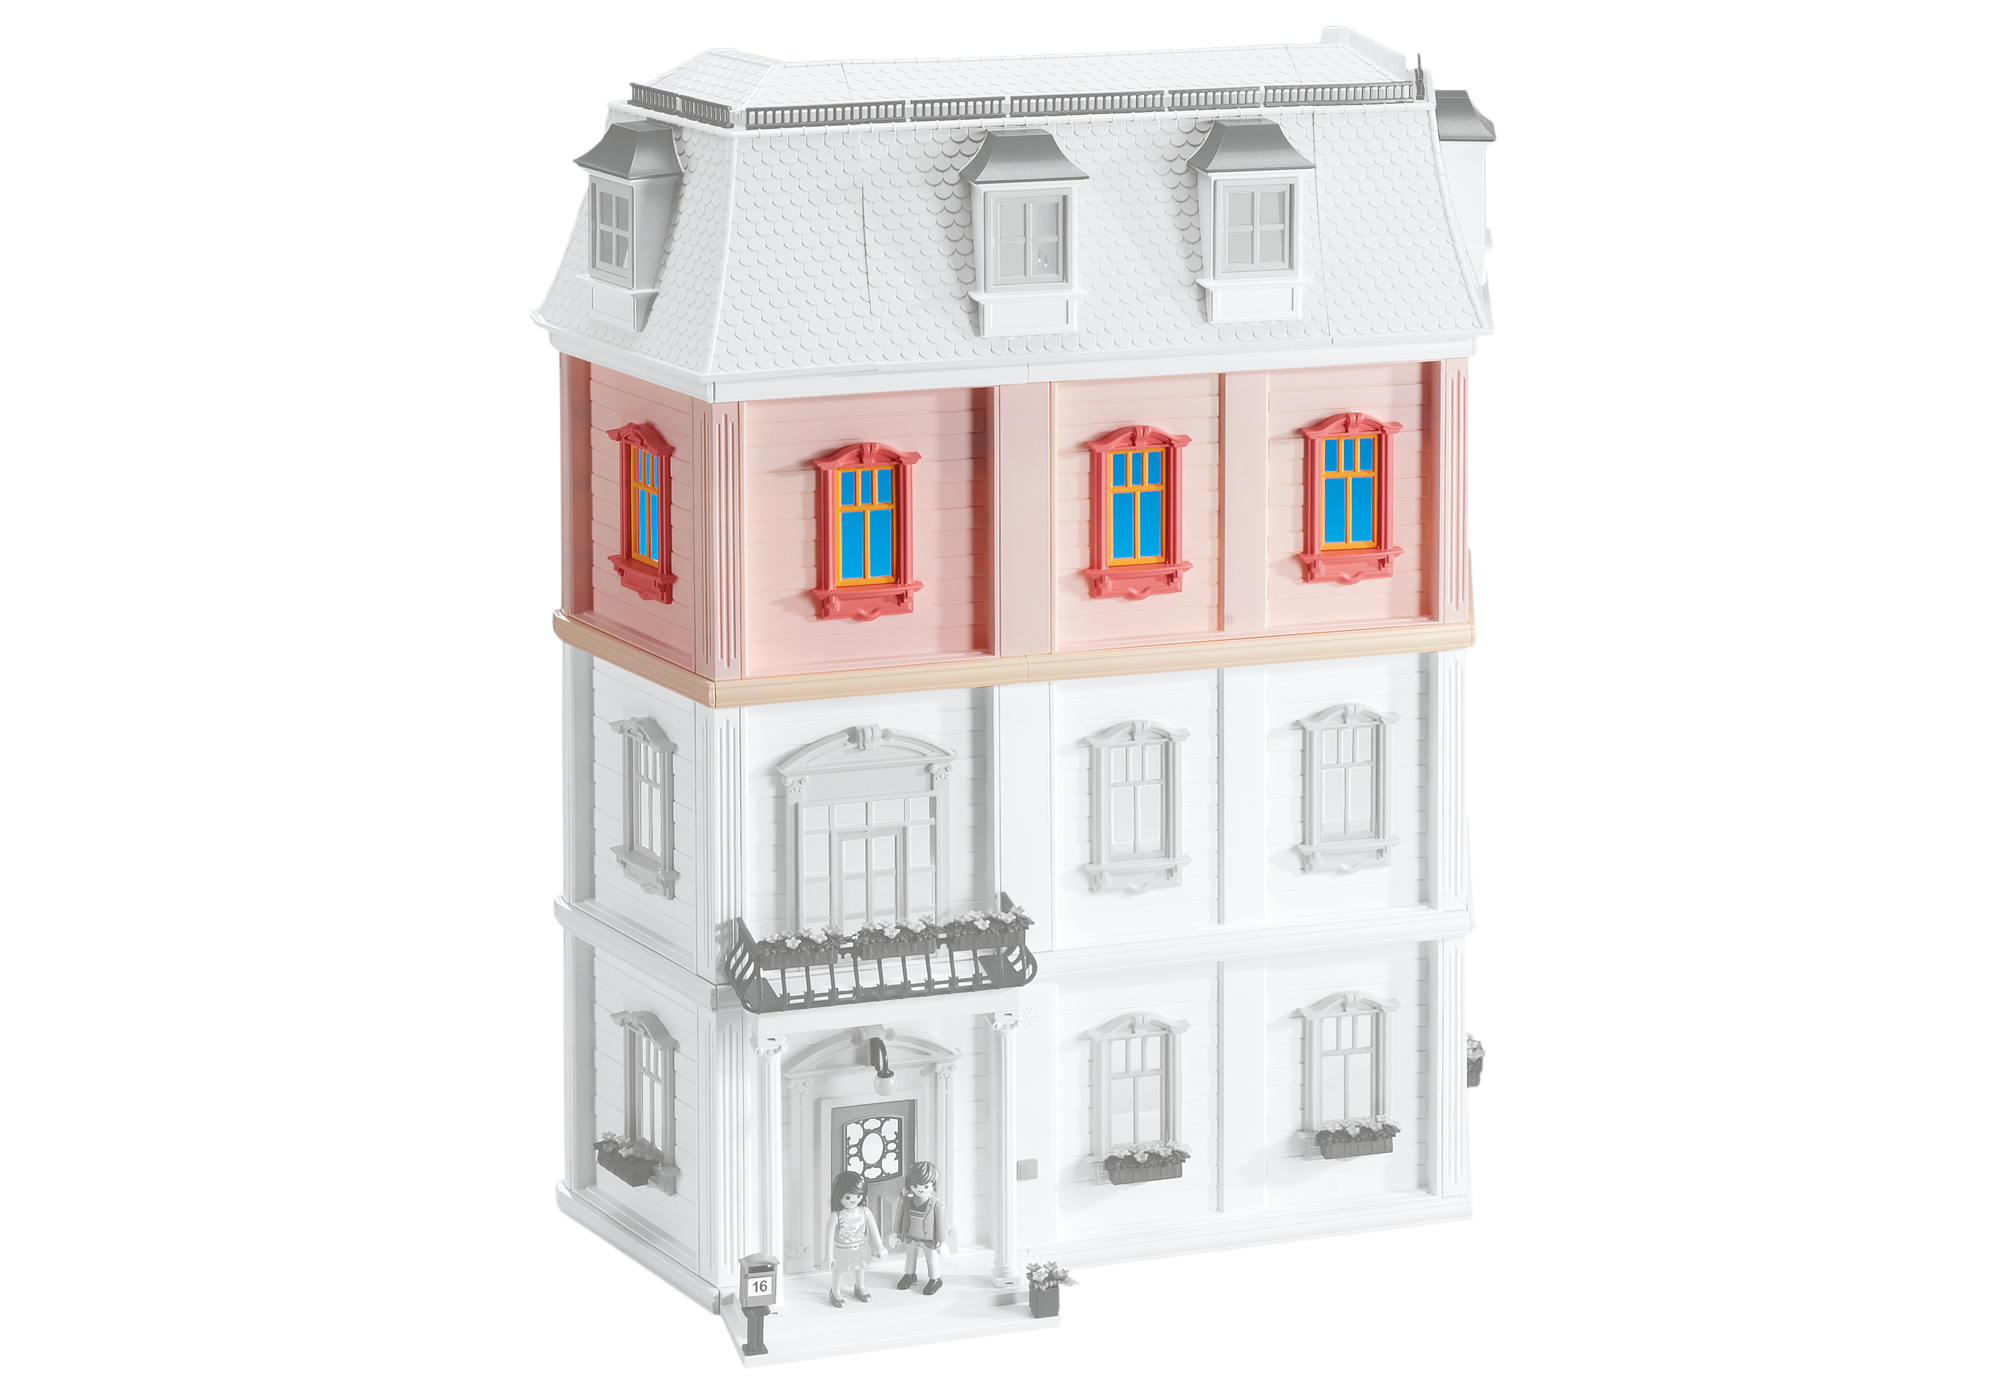 Doll House La Maison De Ville Playmobil France